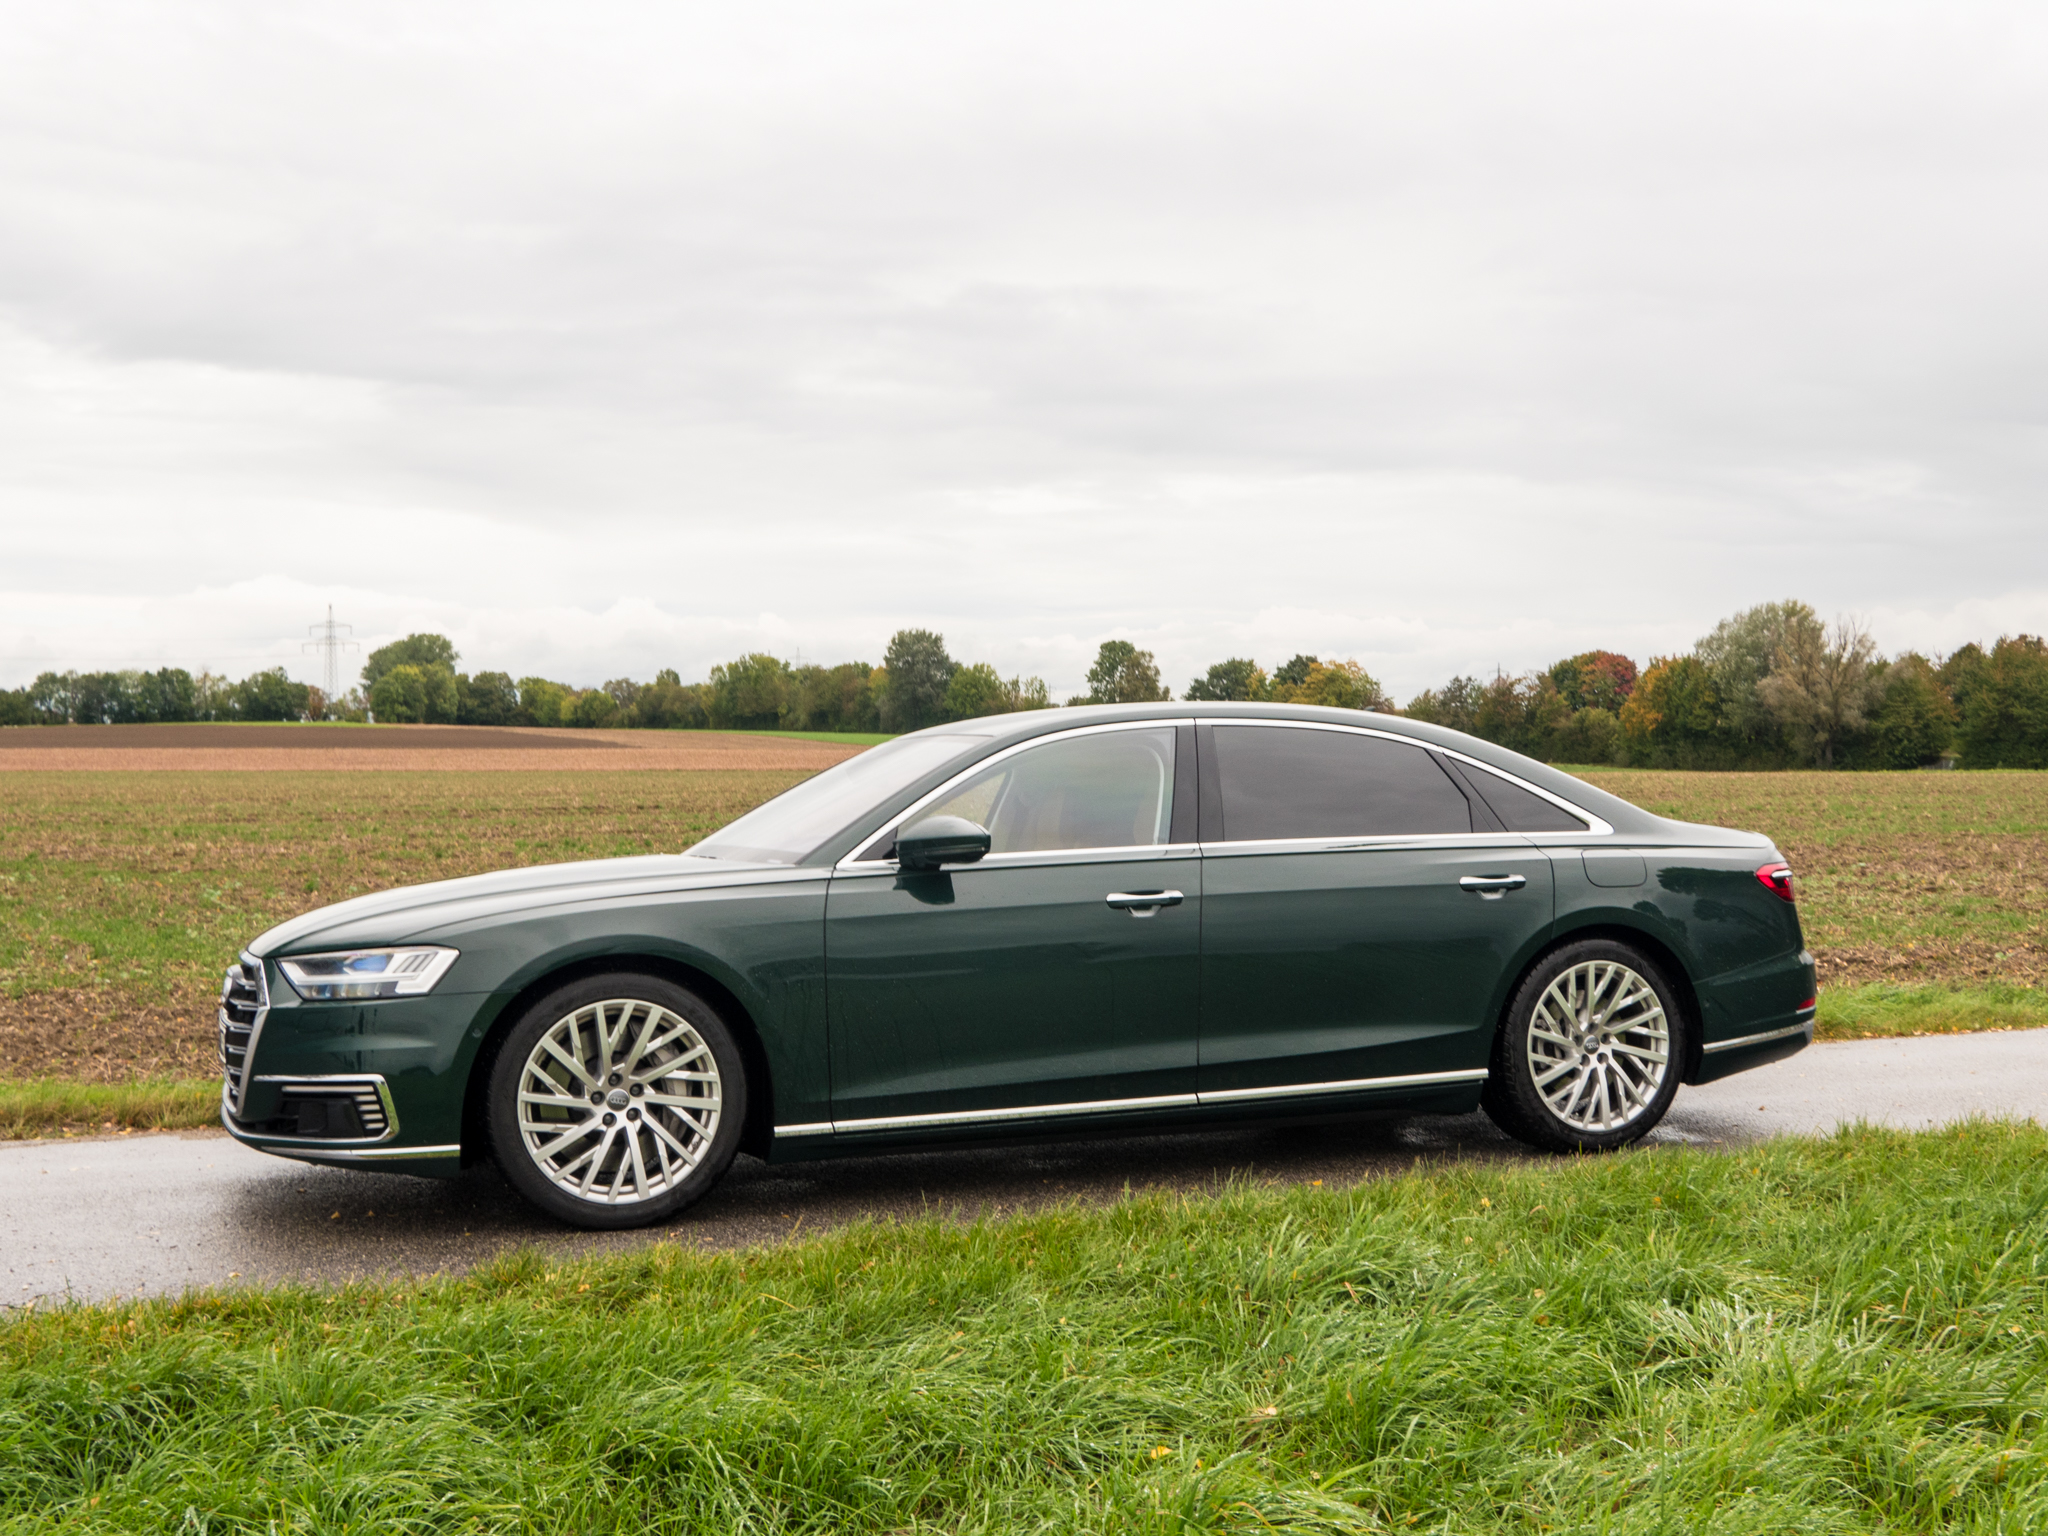 The Audi A8.